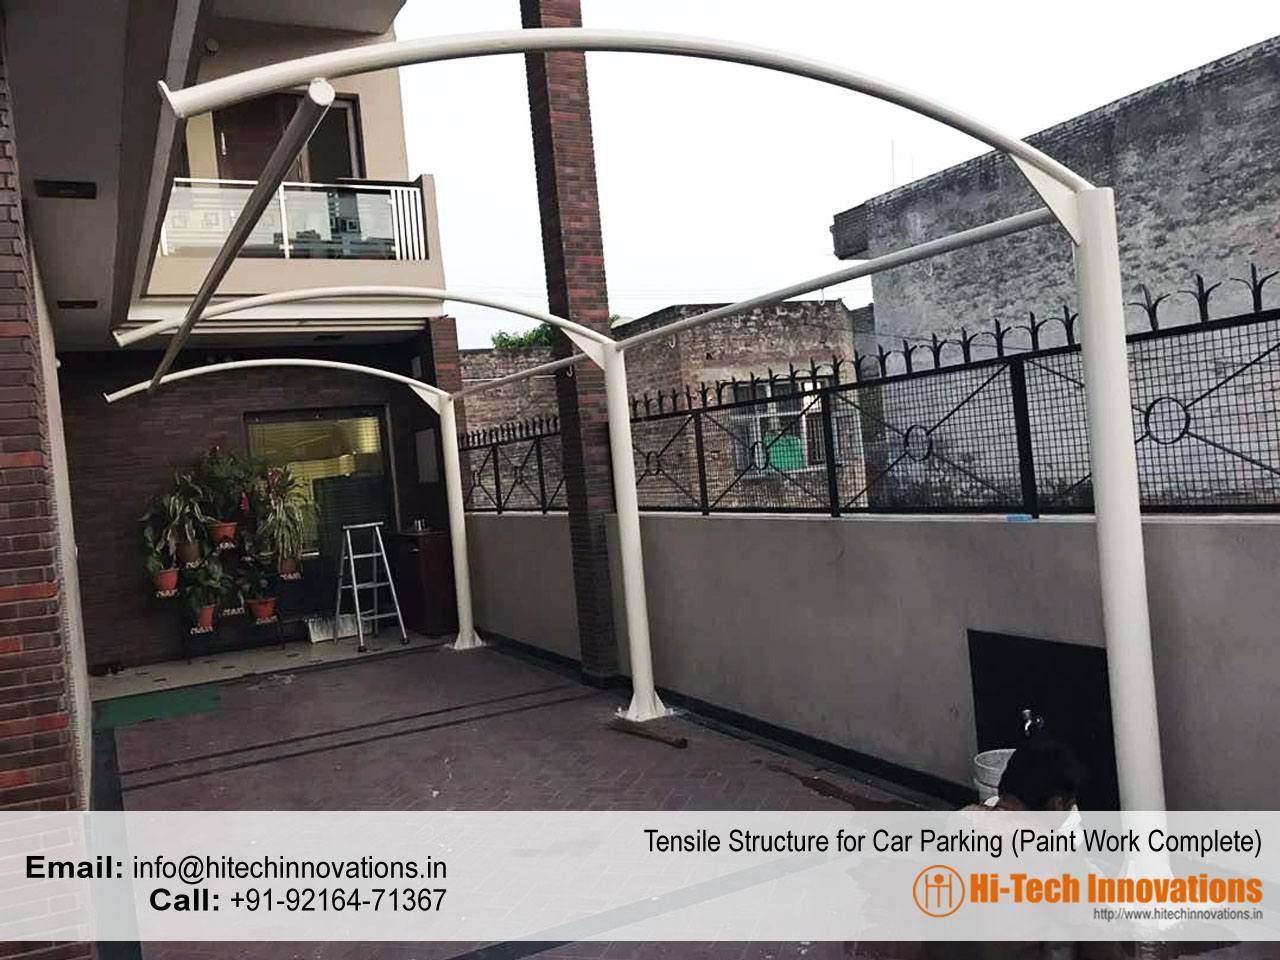 Tensile Structure Chandigarh Paint Work